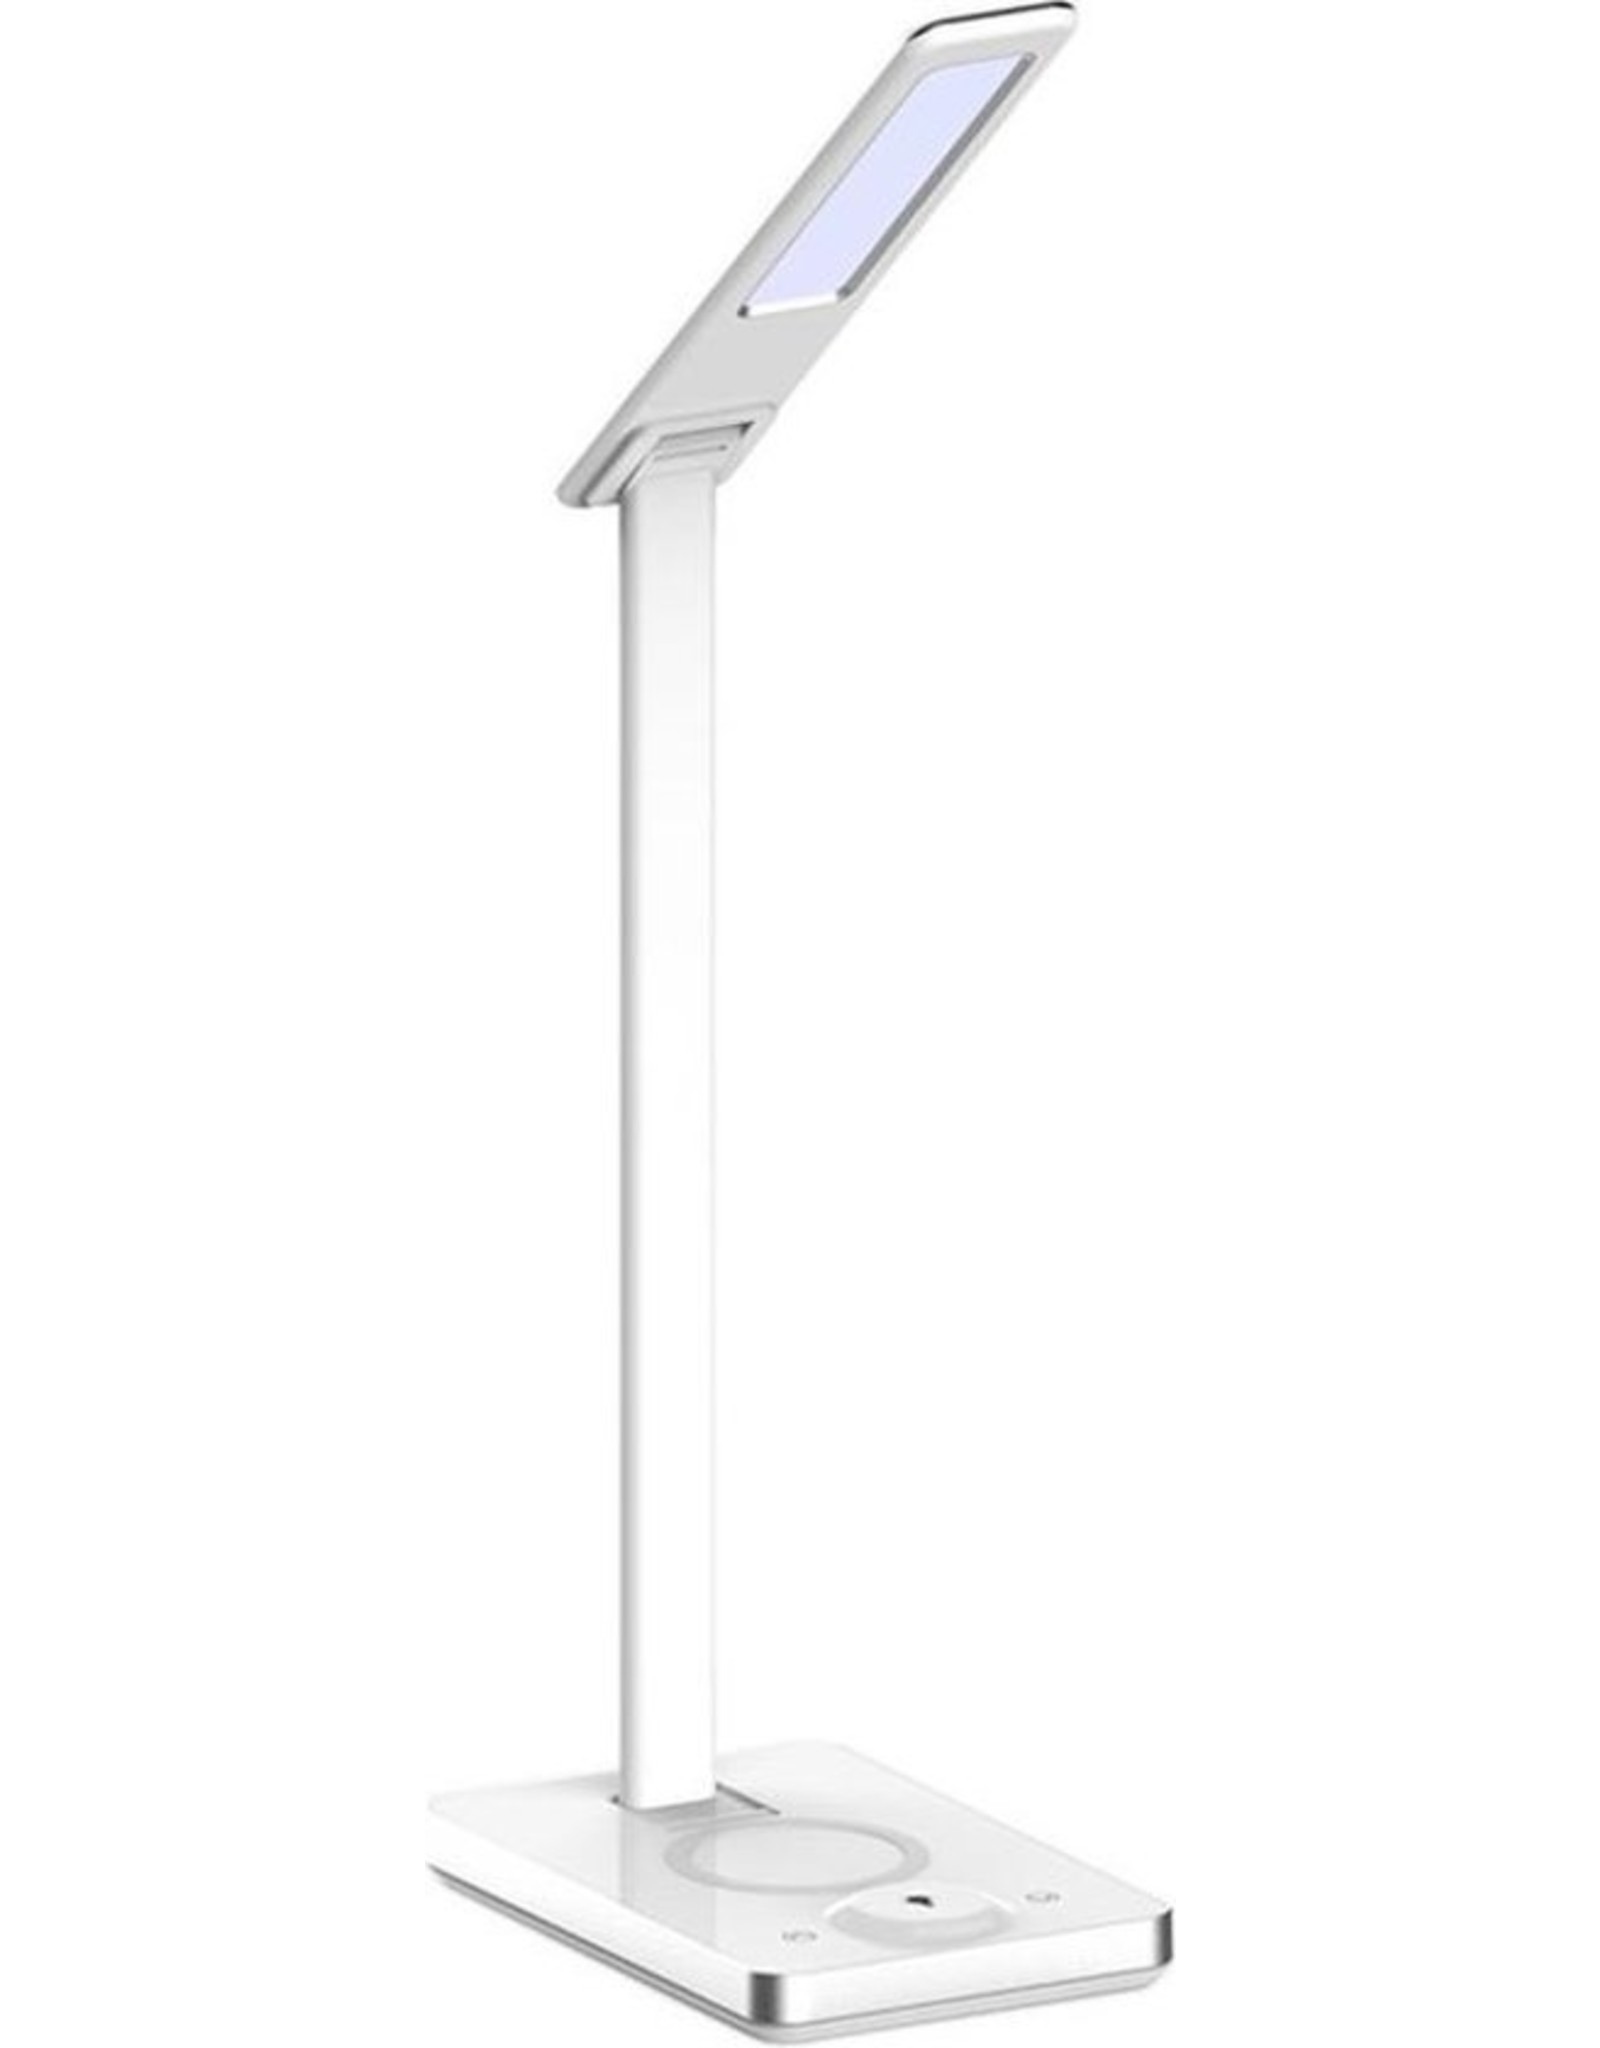 V-tac V-tac VT-7505 Table lamp / desk lamp with wireless QI charger - white